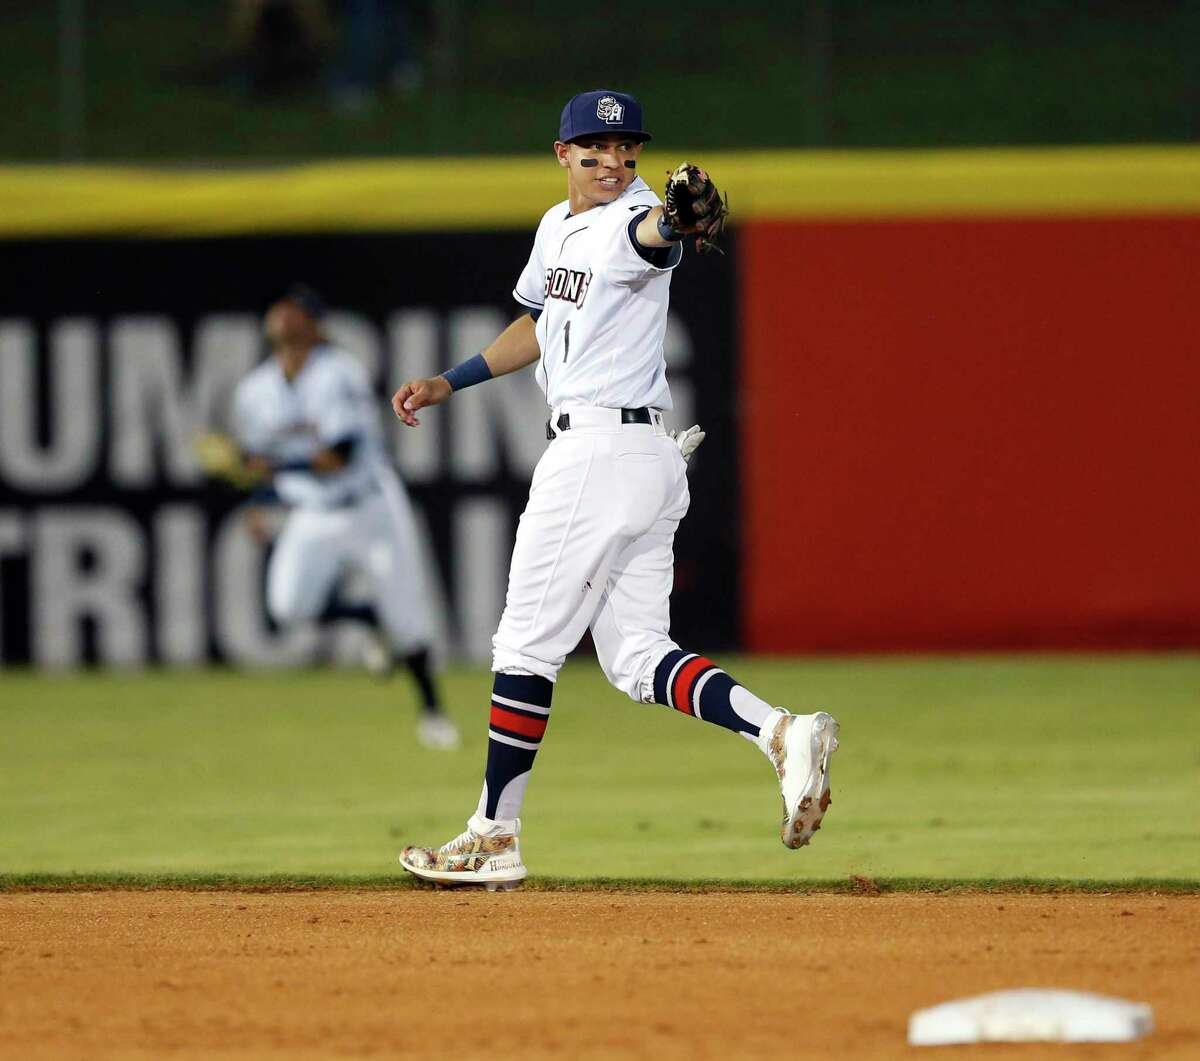 Muricio Dubon motions to a teammate to cover second as he positions himself to take the cut-off as the San Antonio Missions hosted the Round Rock Express on Friday, April 3, 2019, at Wolff Stadium.